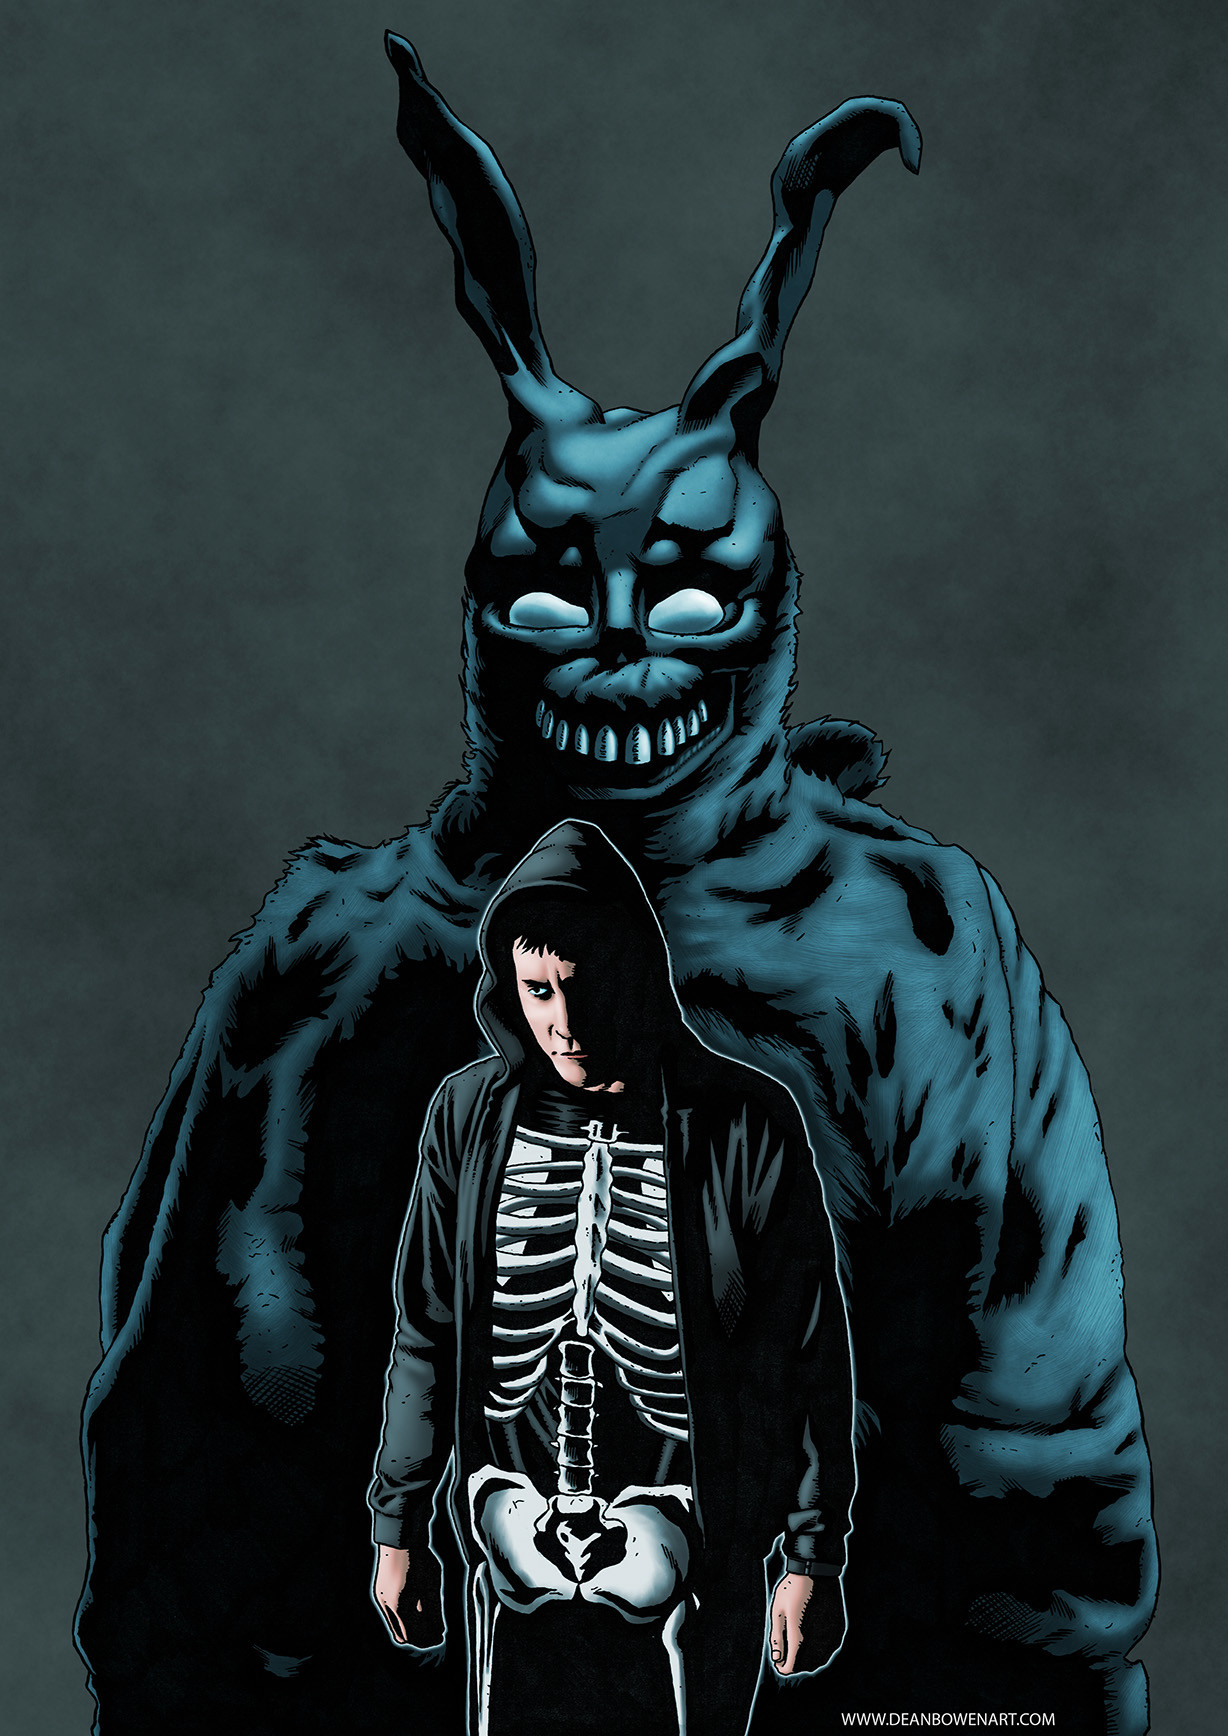 Dean bowen donnie darko